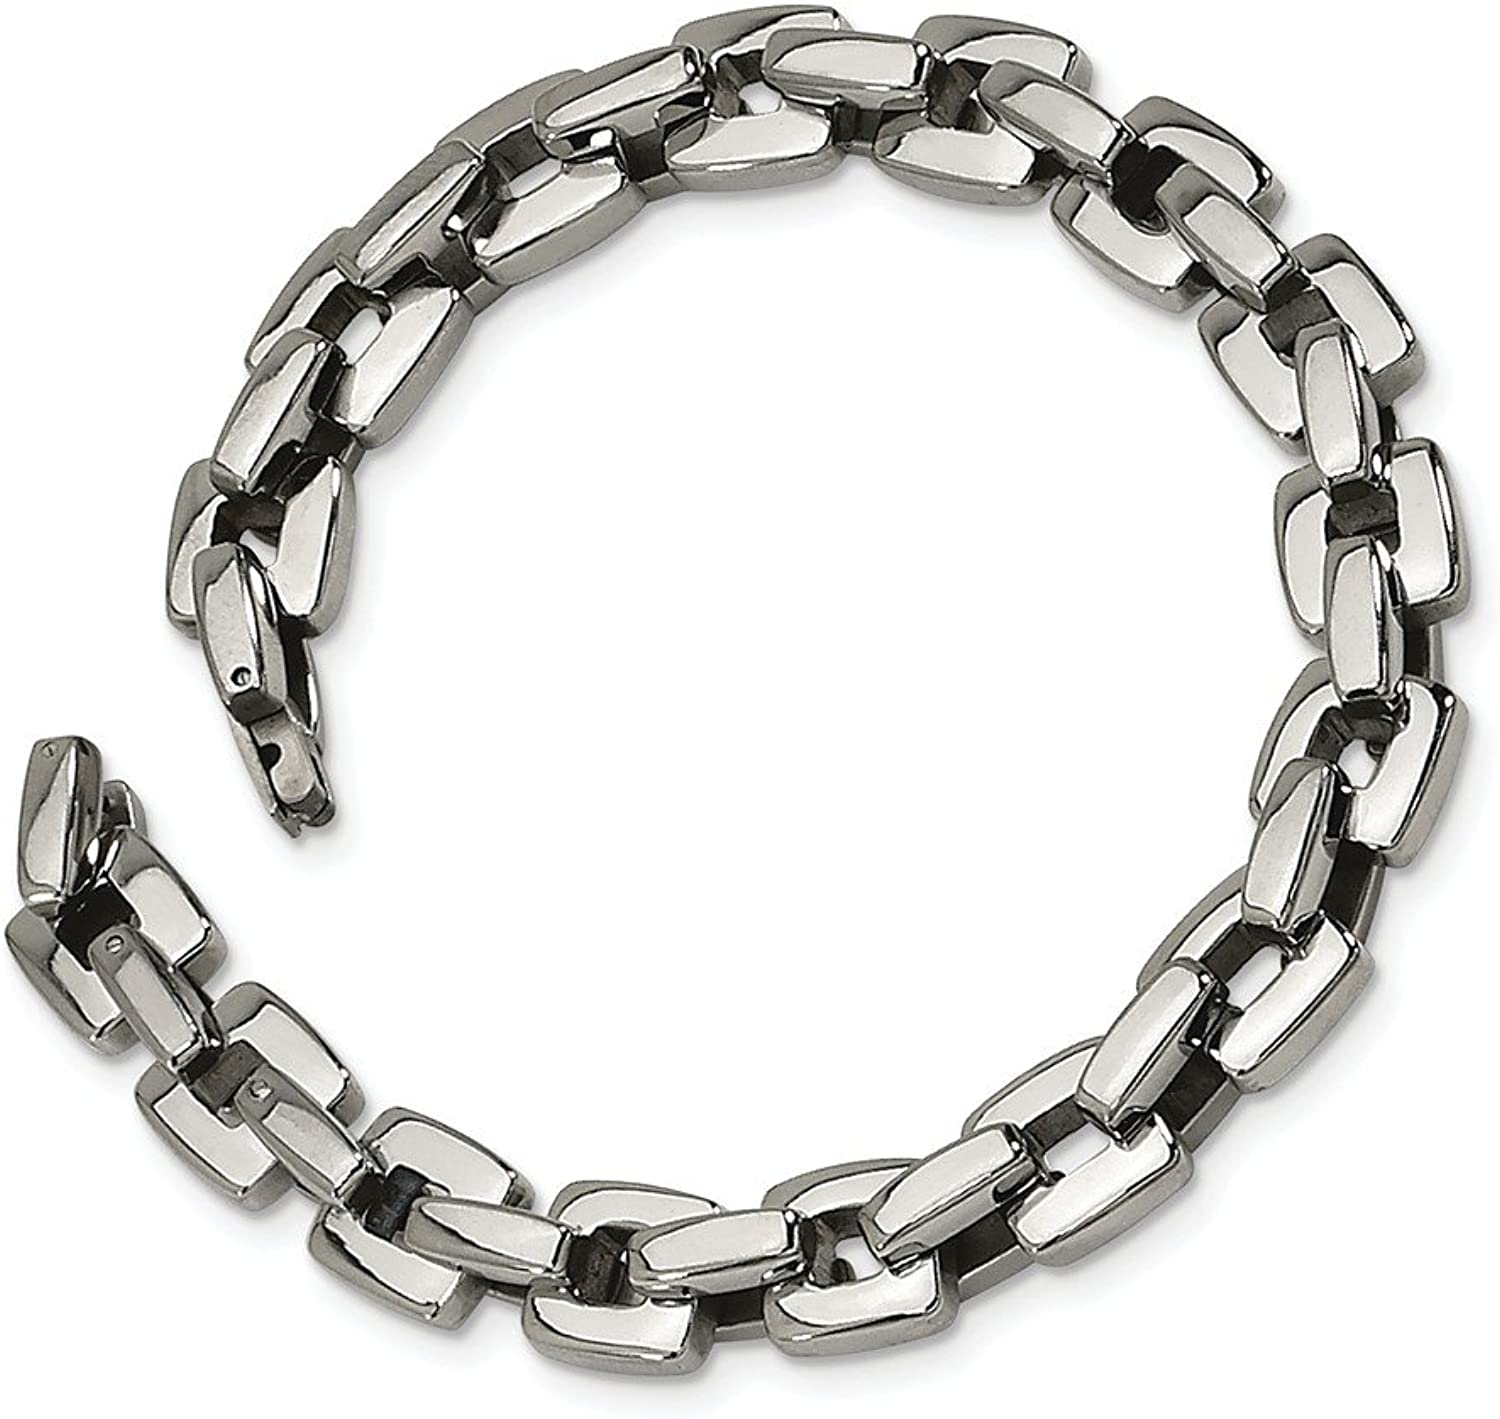 Beautiful Stainless Steel Polished 9in Bracelet